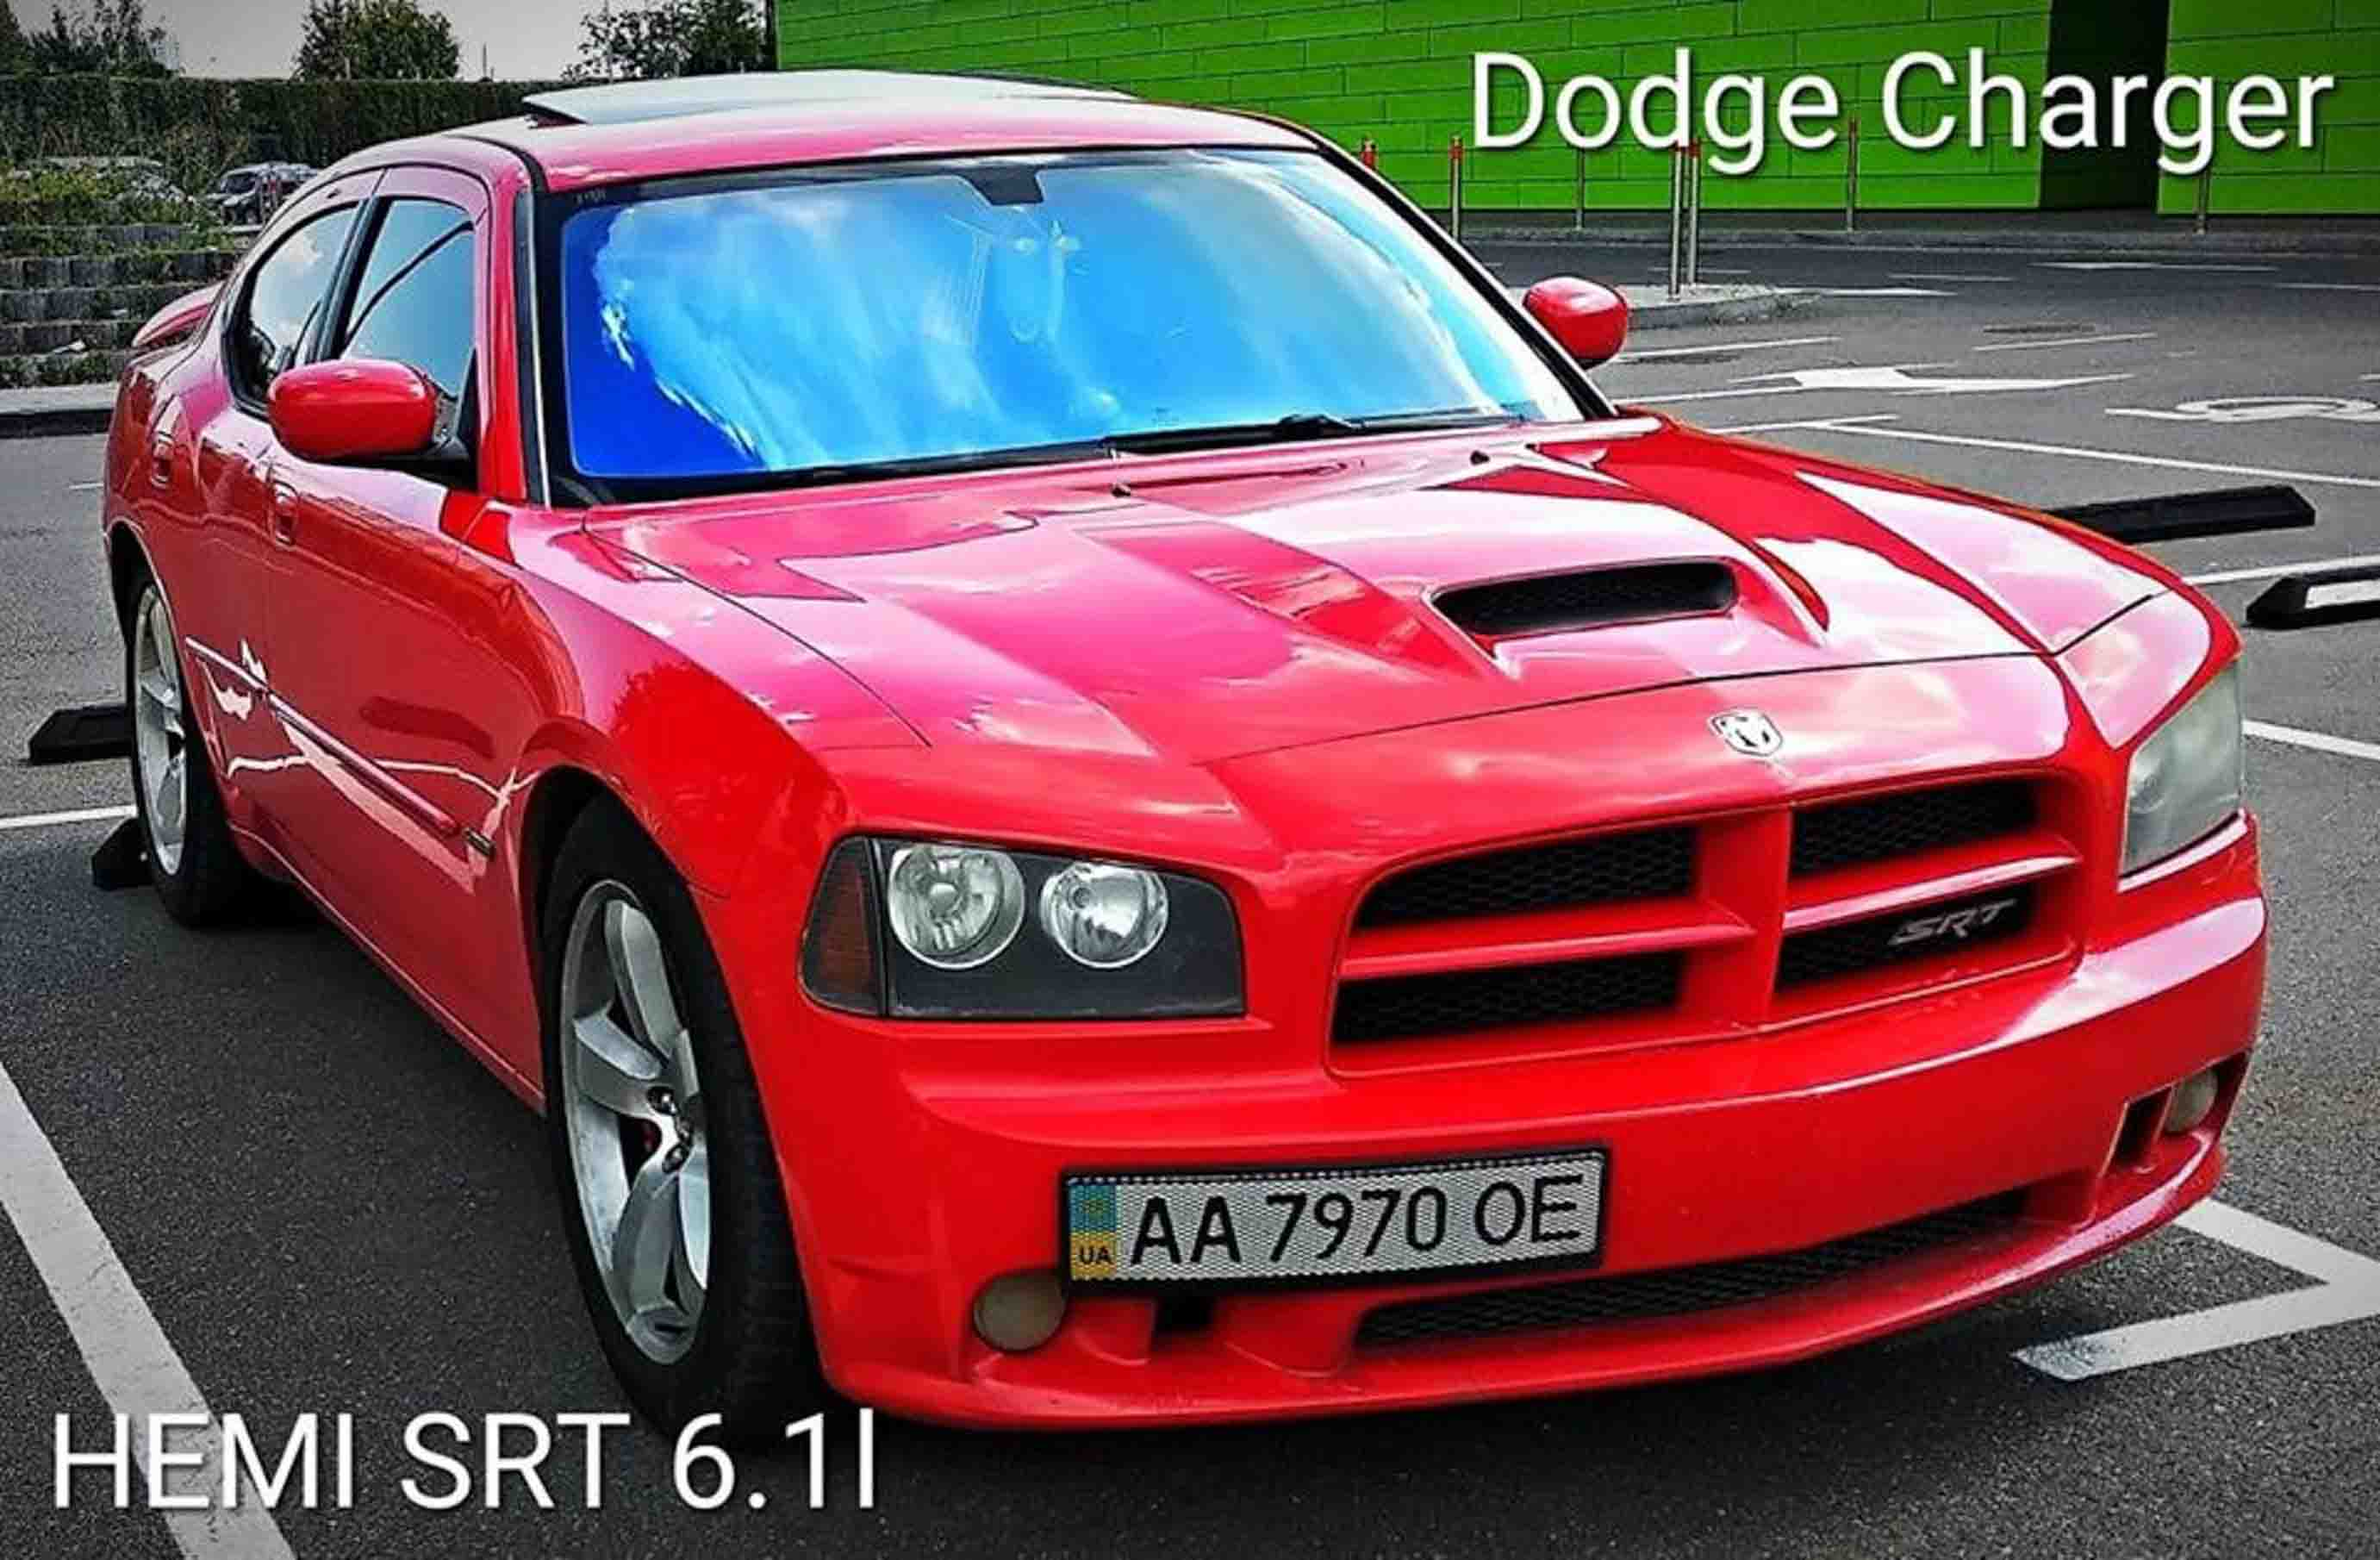 Продам Dodge Charger SRT 8 2007 г.в. фото 1